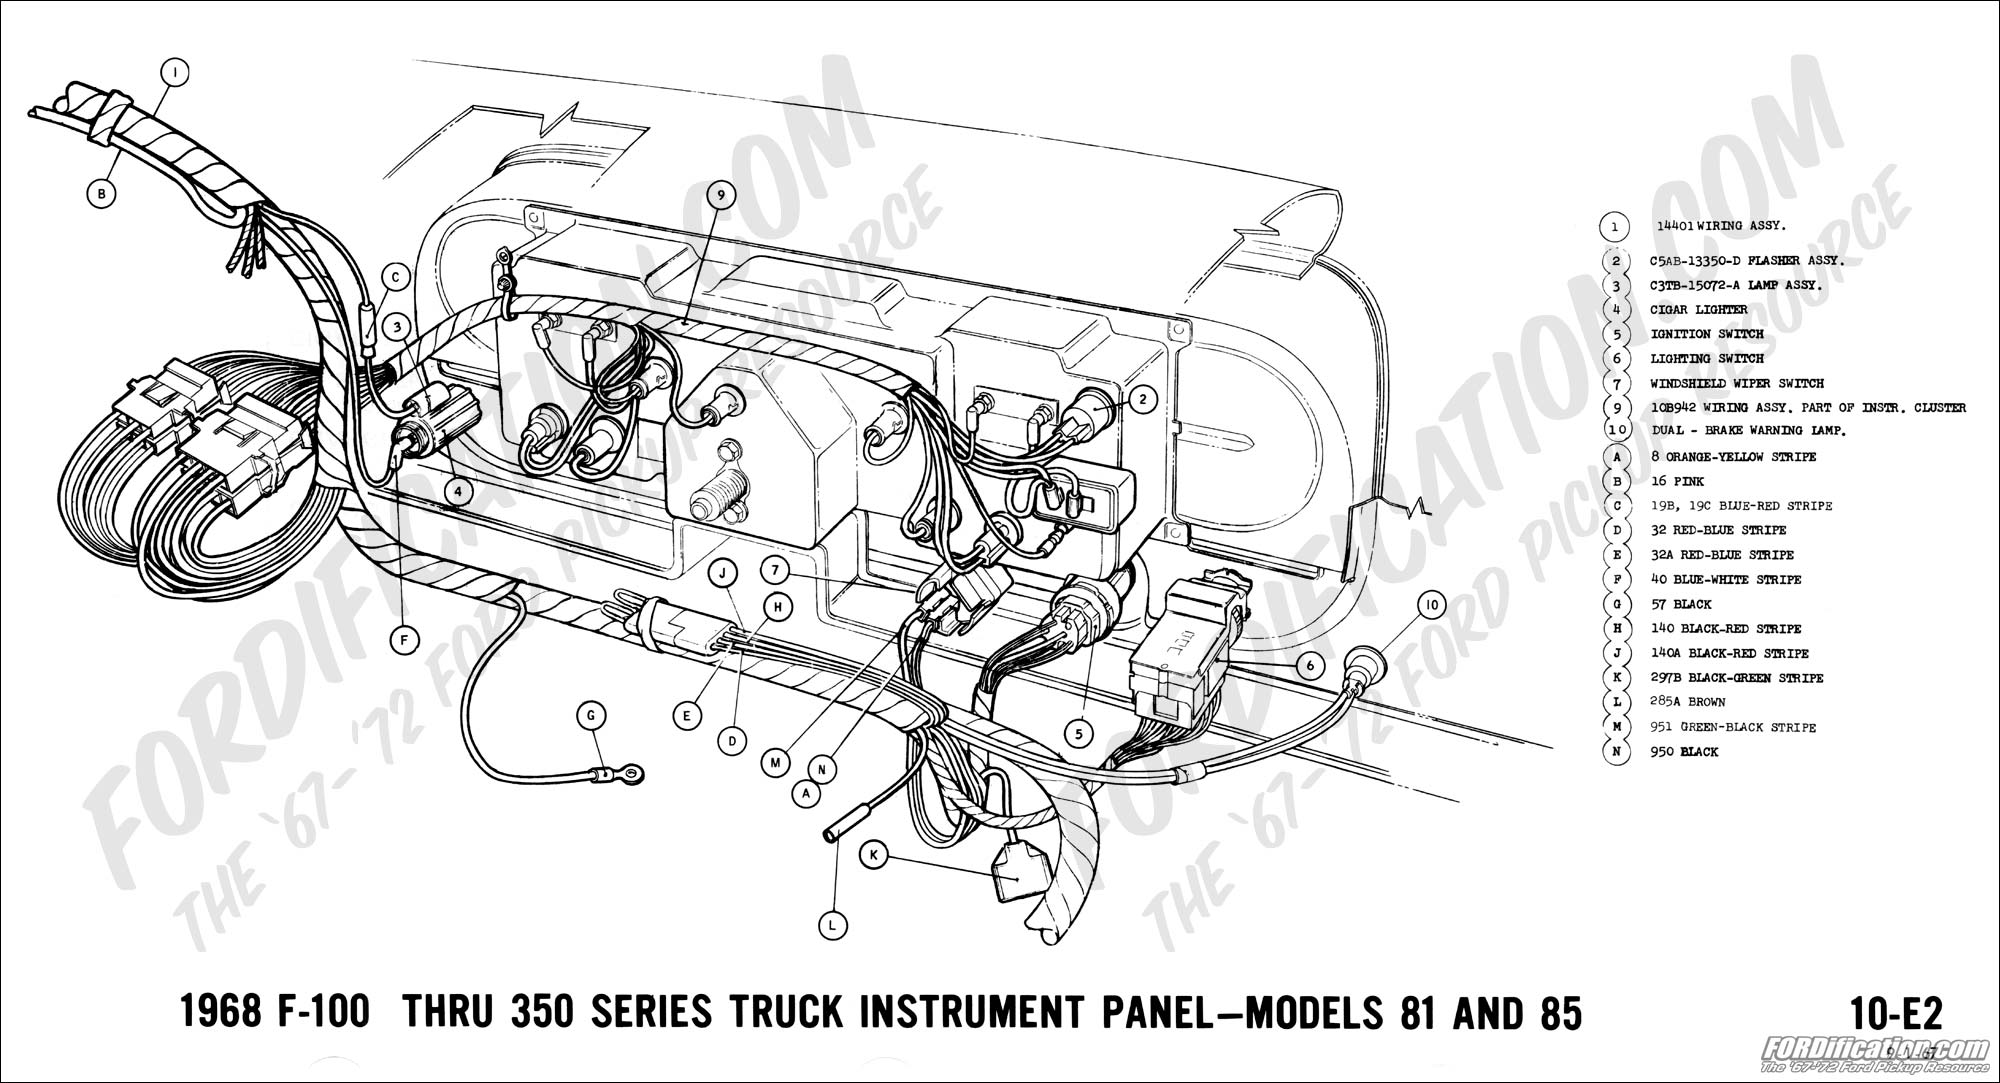 1970 Ford F100 240 Wiring Schema Diagram Online 2016 E450 Free Download Schematic Library Vw Beetle 1968 F 100 Thru 350